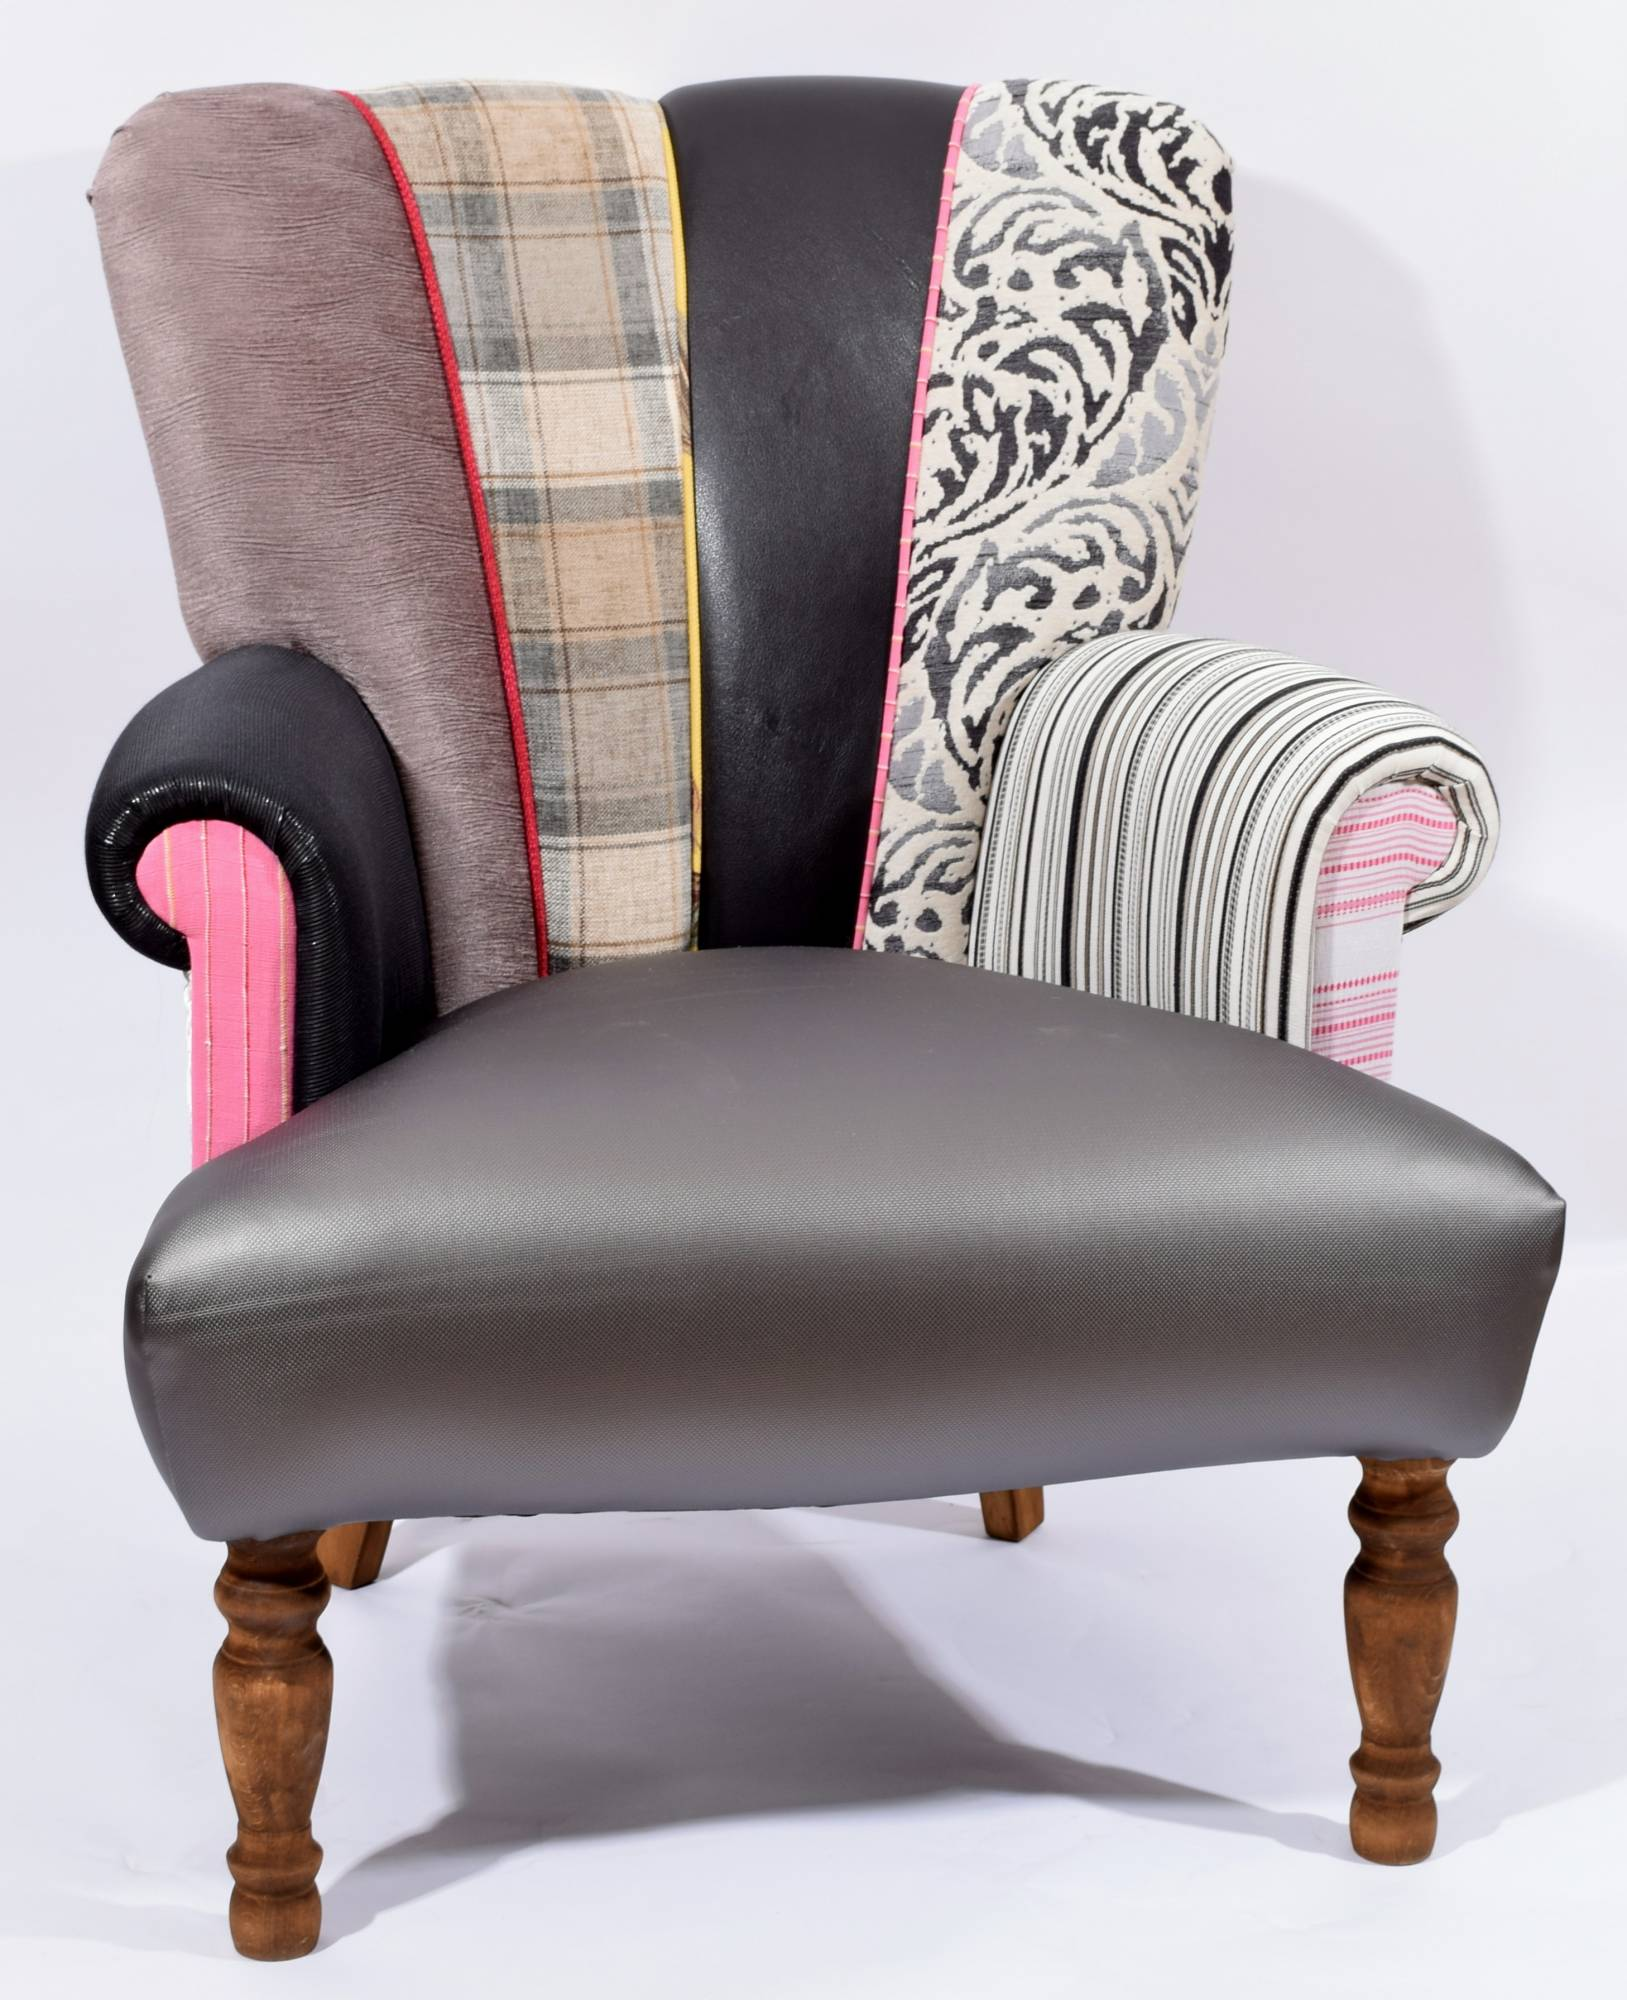 Our furniture quirky chair 101 for Quirky furniture